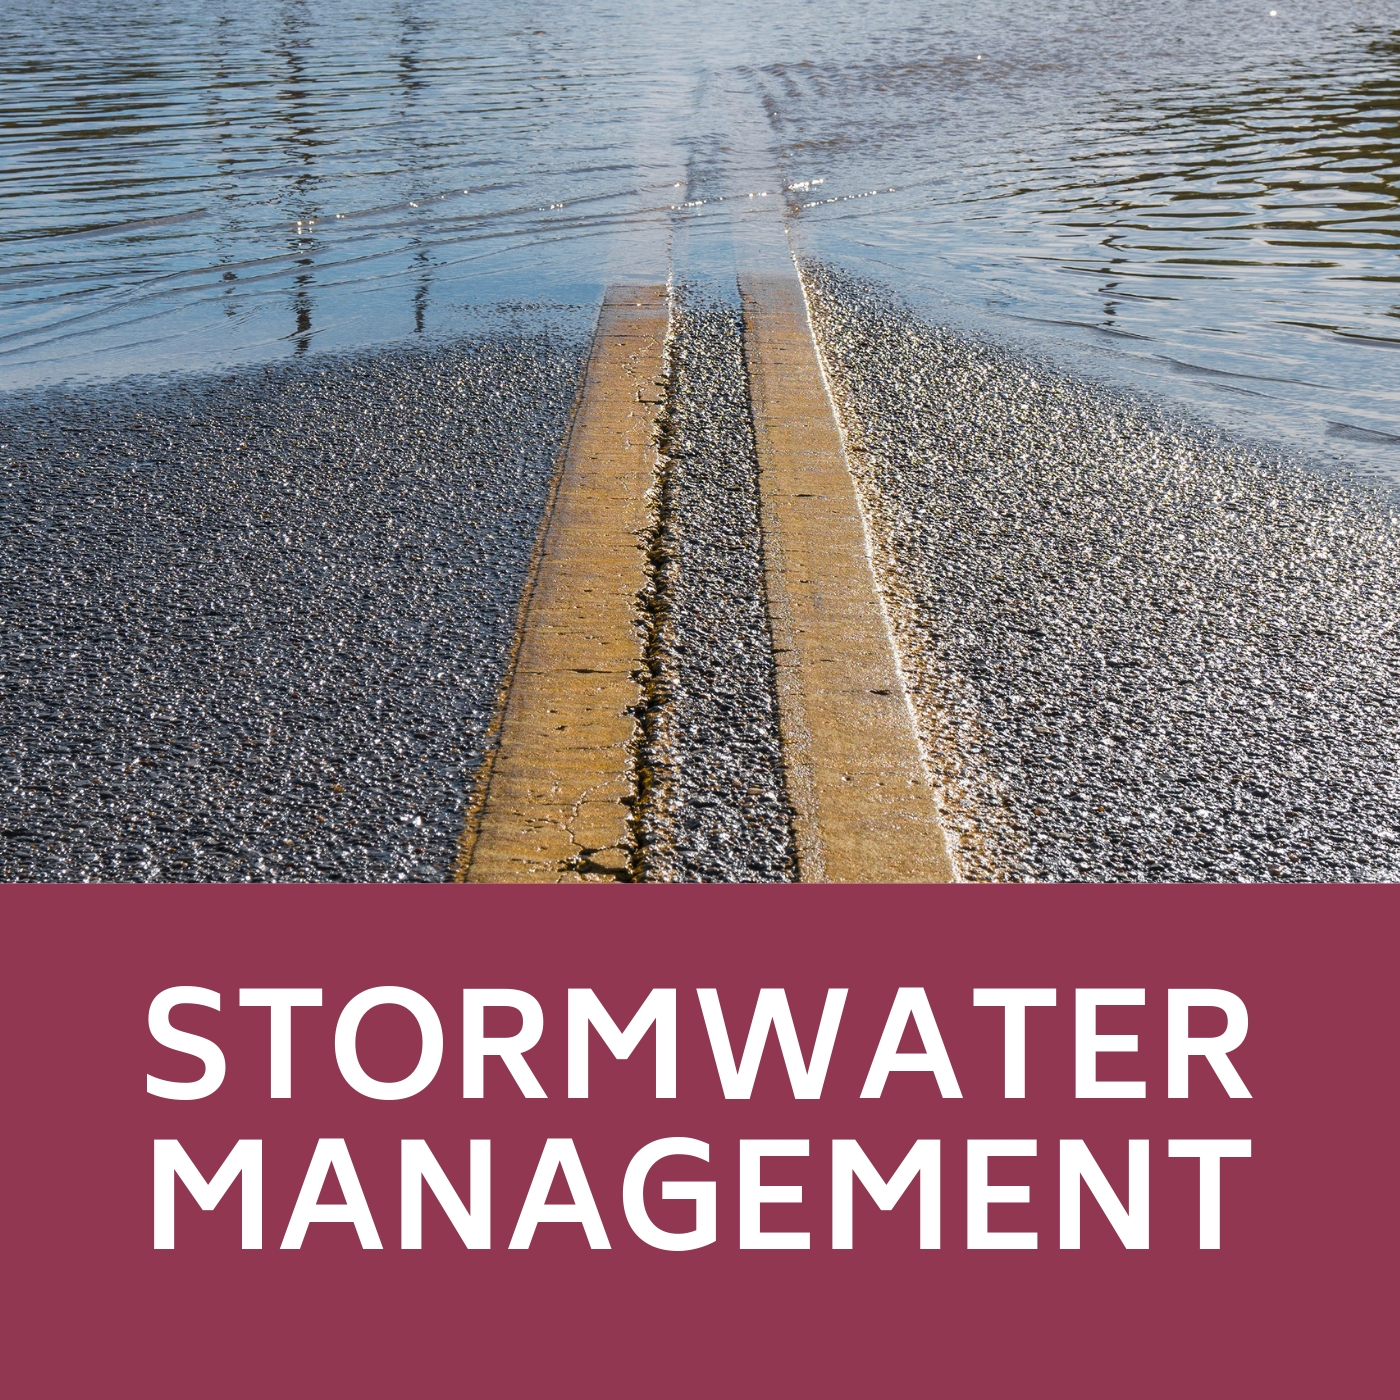 Stormwater Management icon of road that links to information about stormwater management.